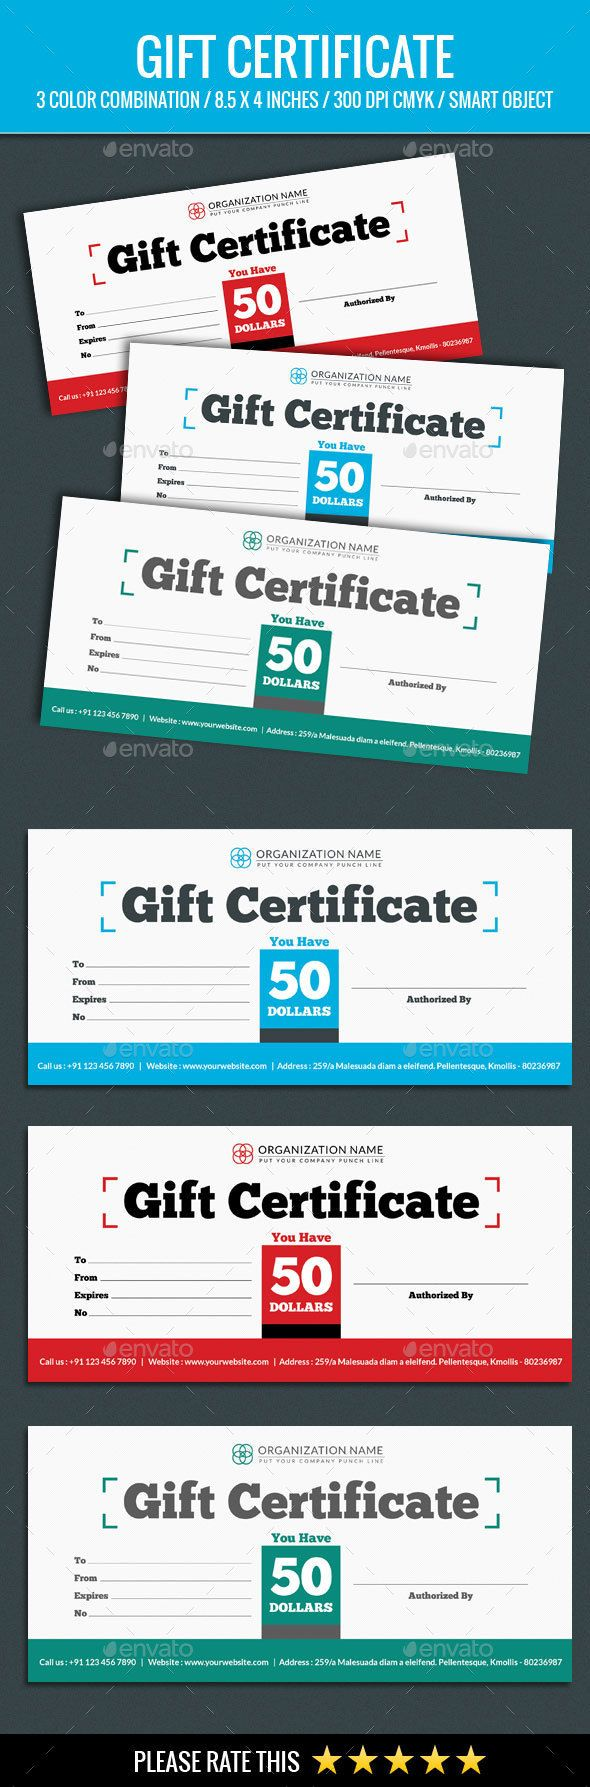 The 26 best gift voucher design images on pinterest gift voucher gift certificate template psd download here httpgraphicriver yelopaper Choice Image